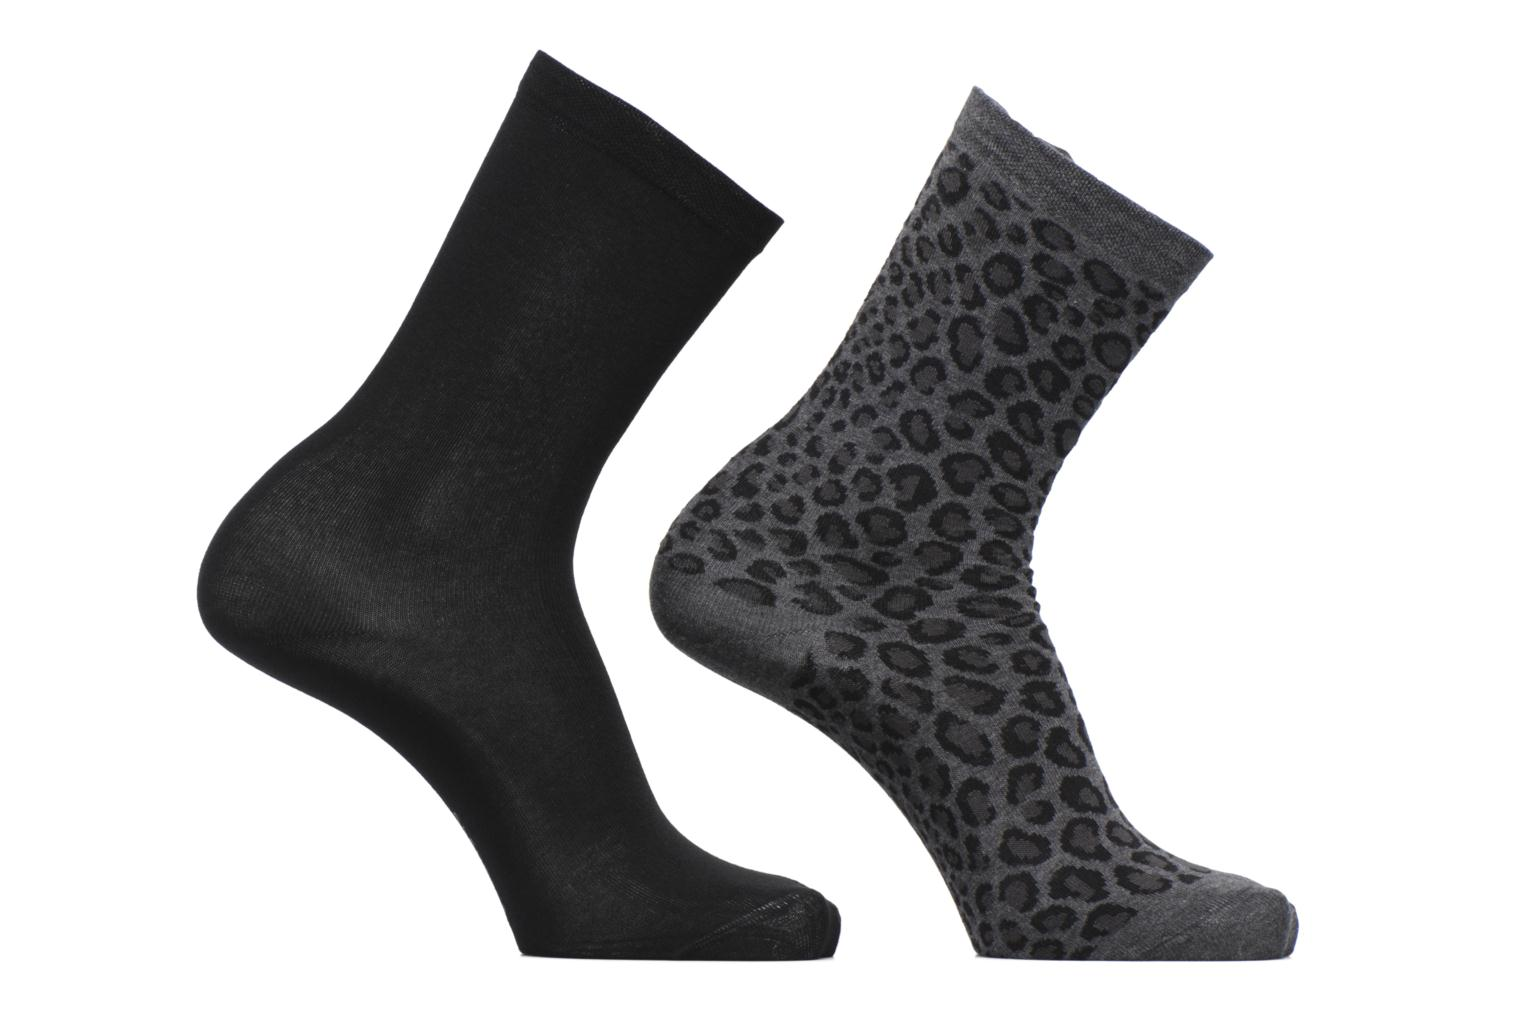 Duo Chaussettes Coton Léopard Lot de 2 ANTHRACITE-NOIR/CHARCOAL GREY-BLACK DQ4